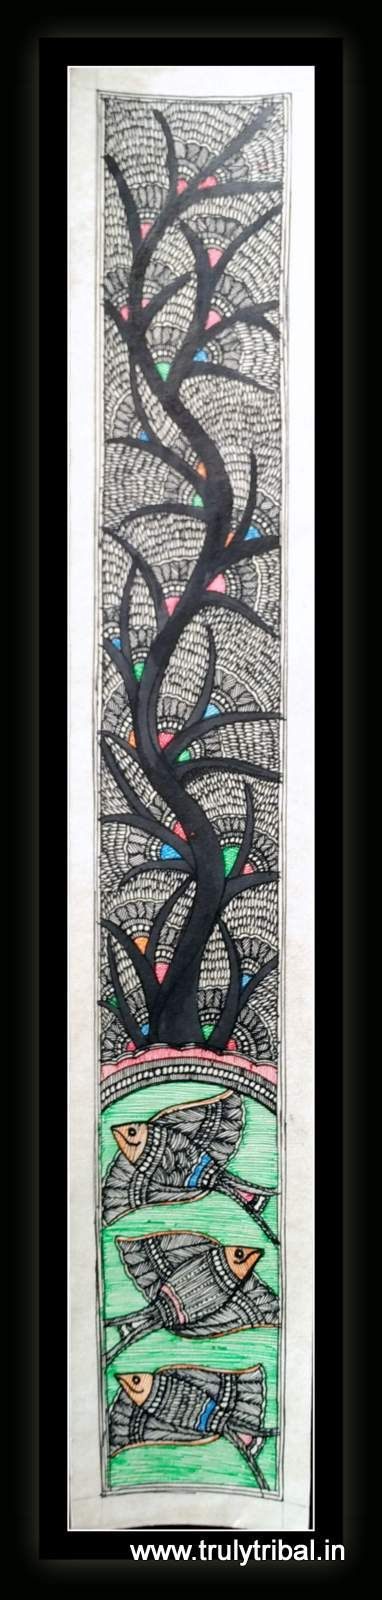 """""""This Black & White Madhubani has very intricate work, extremely fin details on Kadamb Tree along with classic motif of Fish. This Madhubani paintings is made by state Awardee artist on handmade paper by natural colours. Size: 8*26 inches"""""""